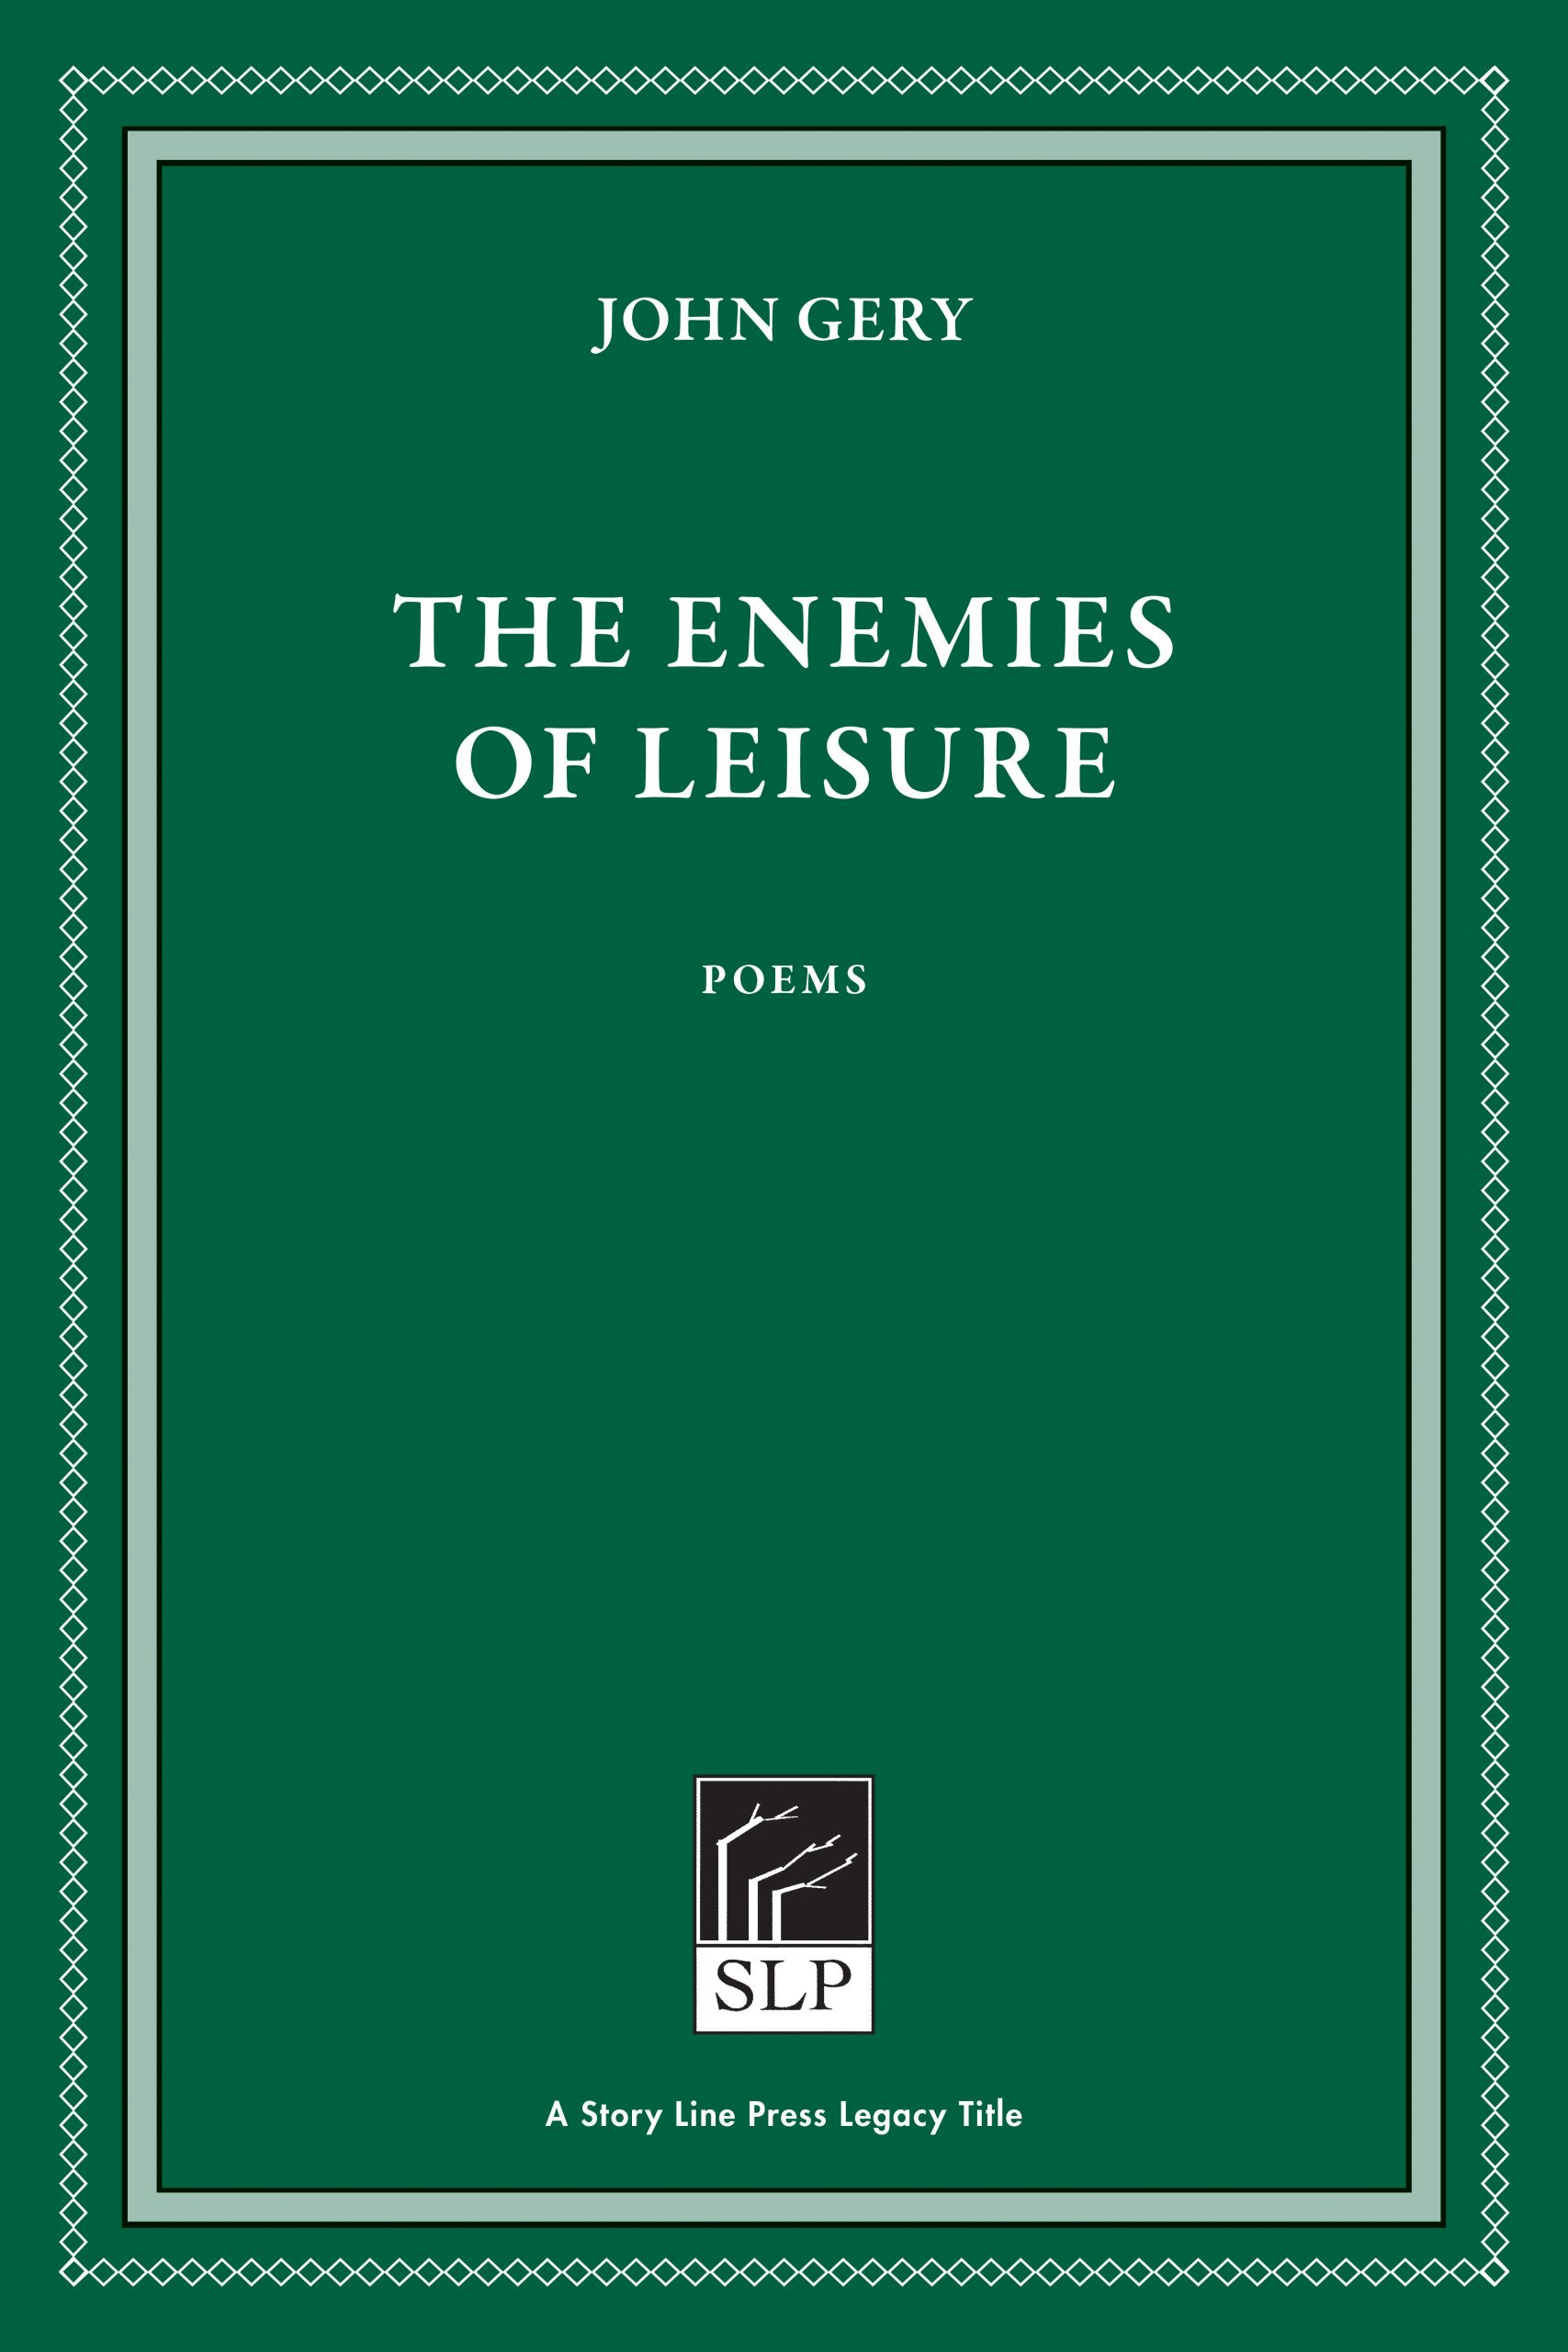 Story Line Press legacy tittle, John Gery The Enemies of Leisure Poems, white script text against emerald green background.